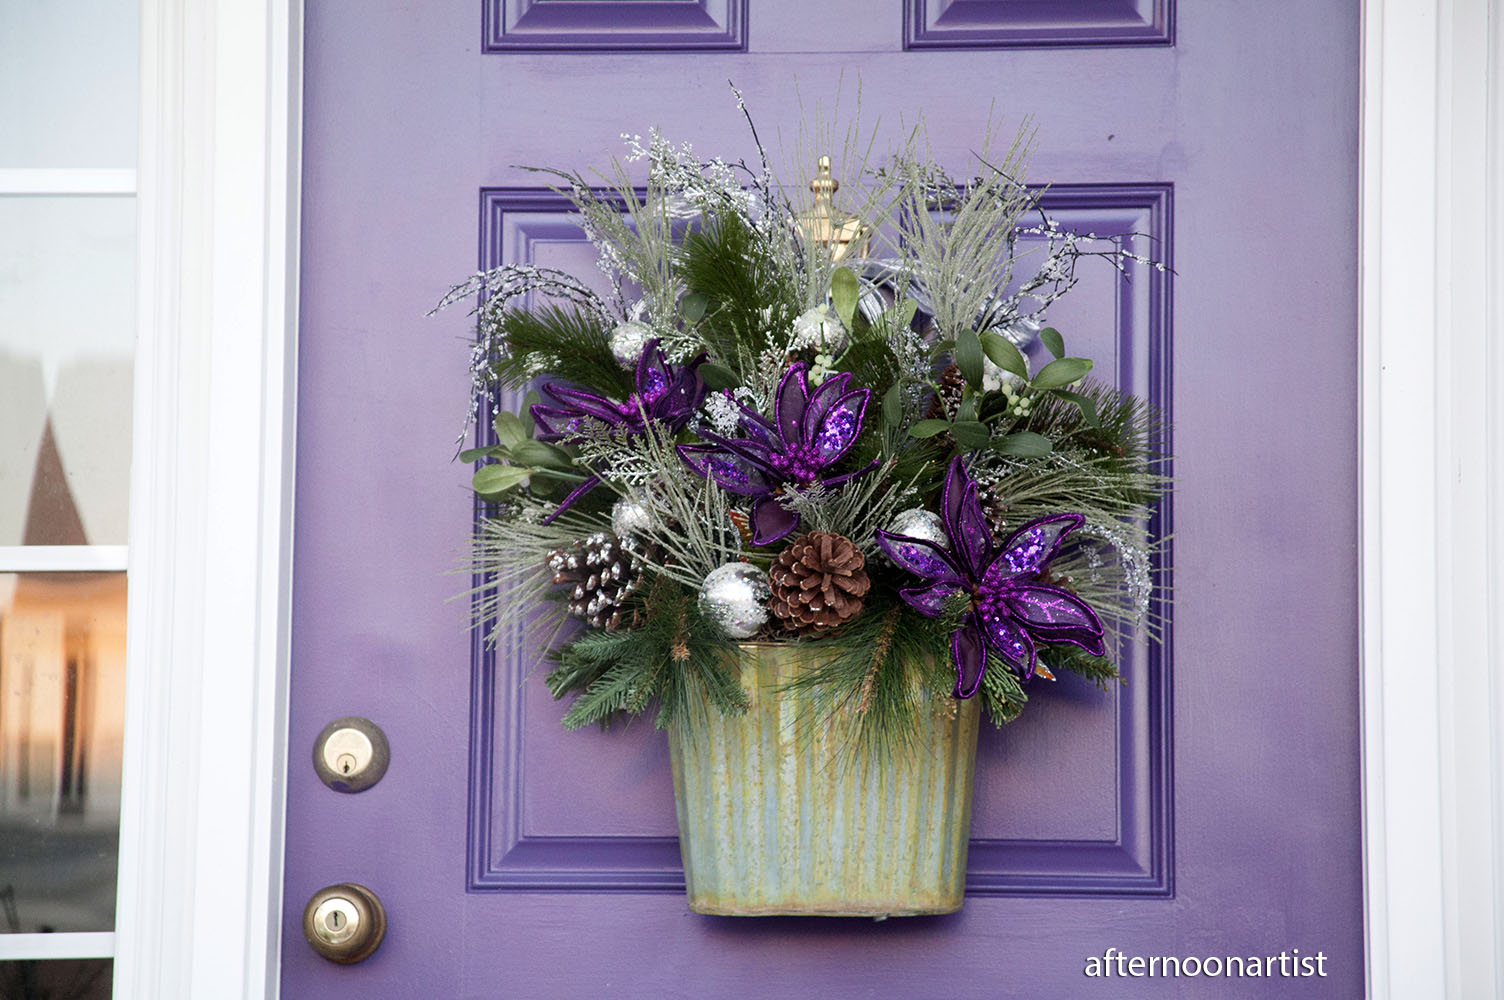 1000 #8D643E  Purple And Silver Holiday Wreath That She Custom Made For My Purple wallpaper Purple Front Doors 47051504